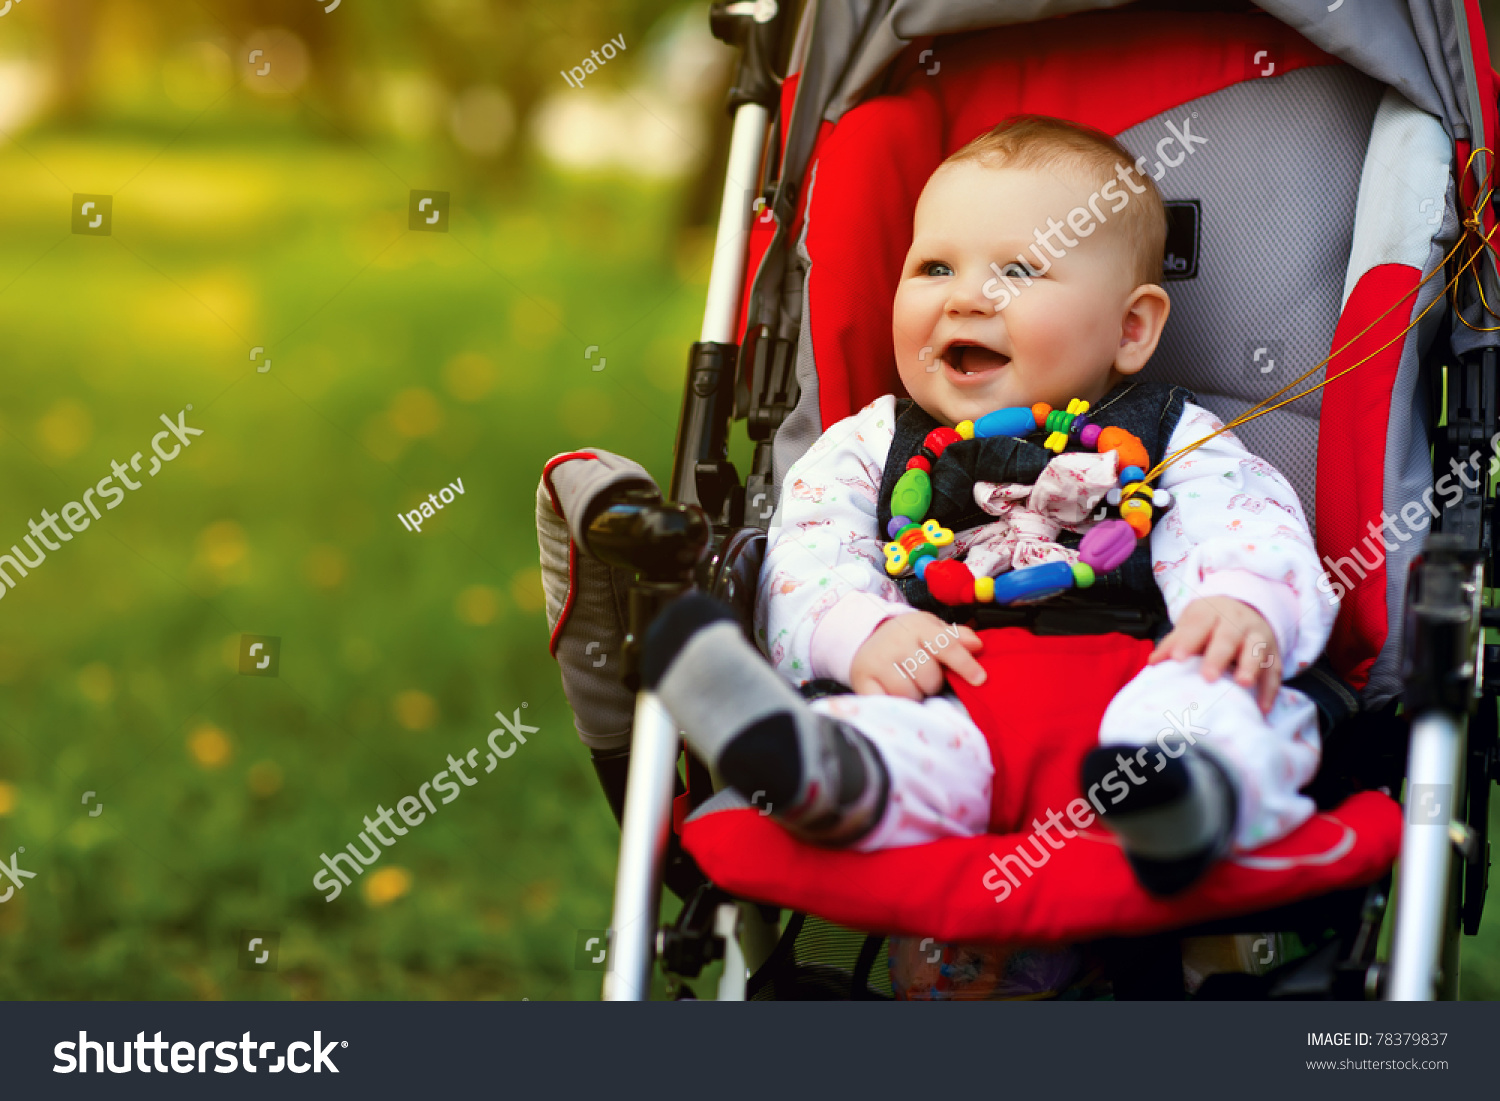 Baby Sitting Stroller On Nature Stock Photo 78379837 - Shutterstock